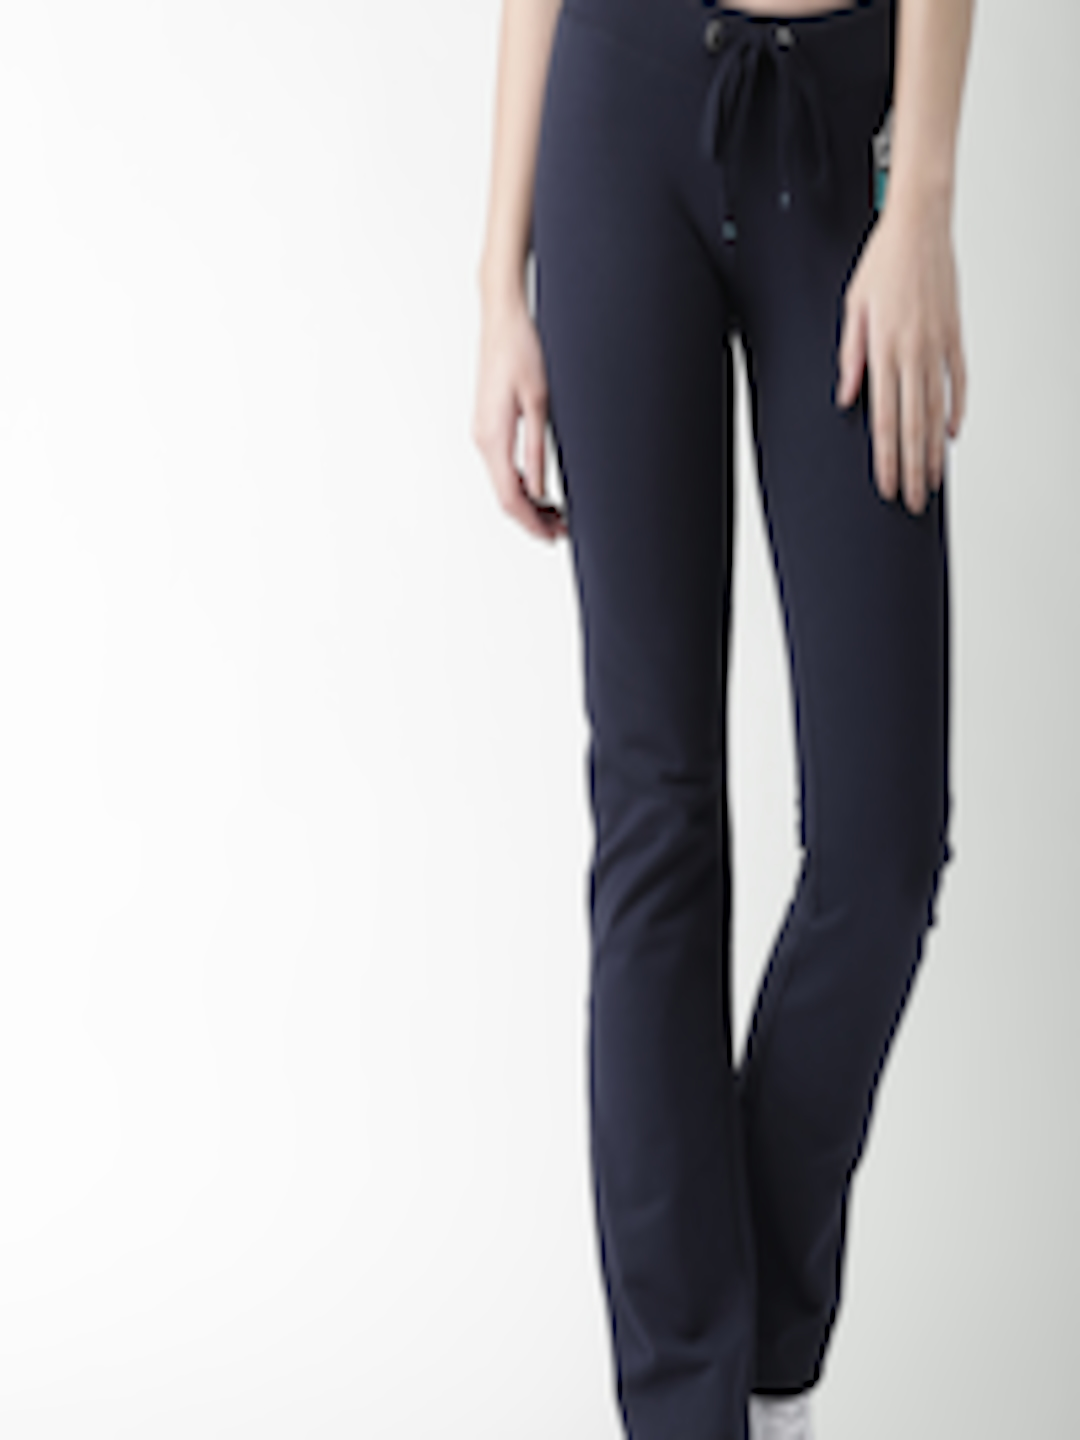 f4597be9042c7 Buy Aeropostale Navy Track Pants - Track Pants for Women 1931691 ...